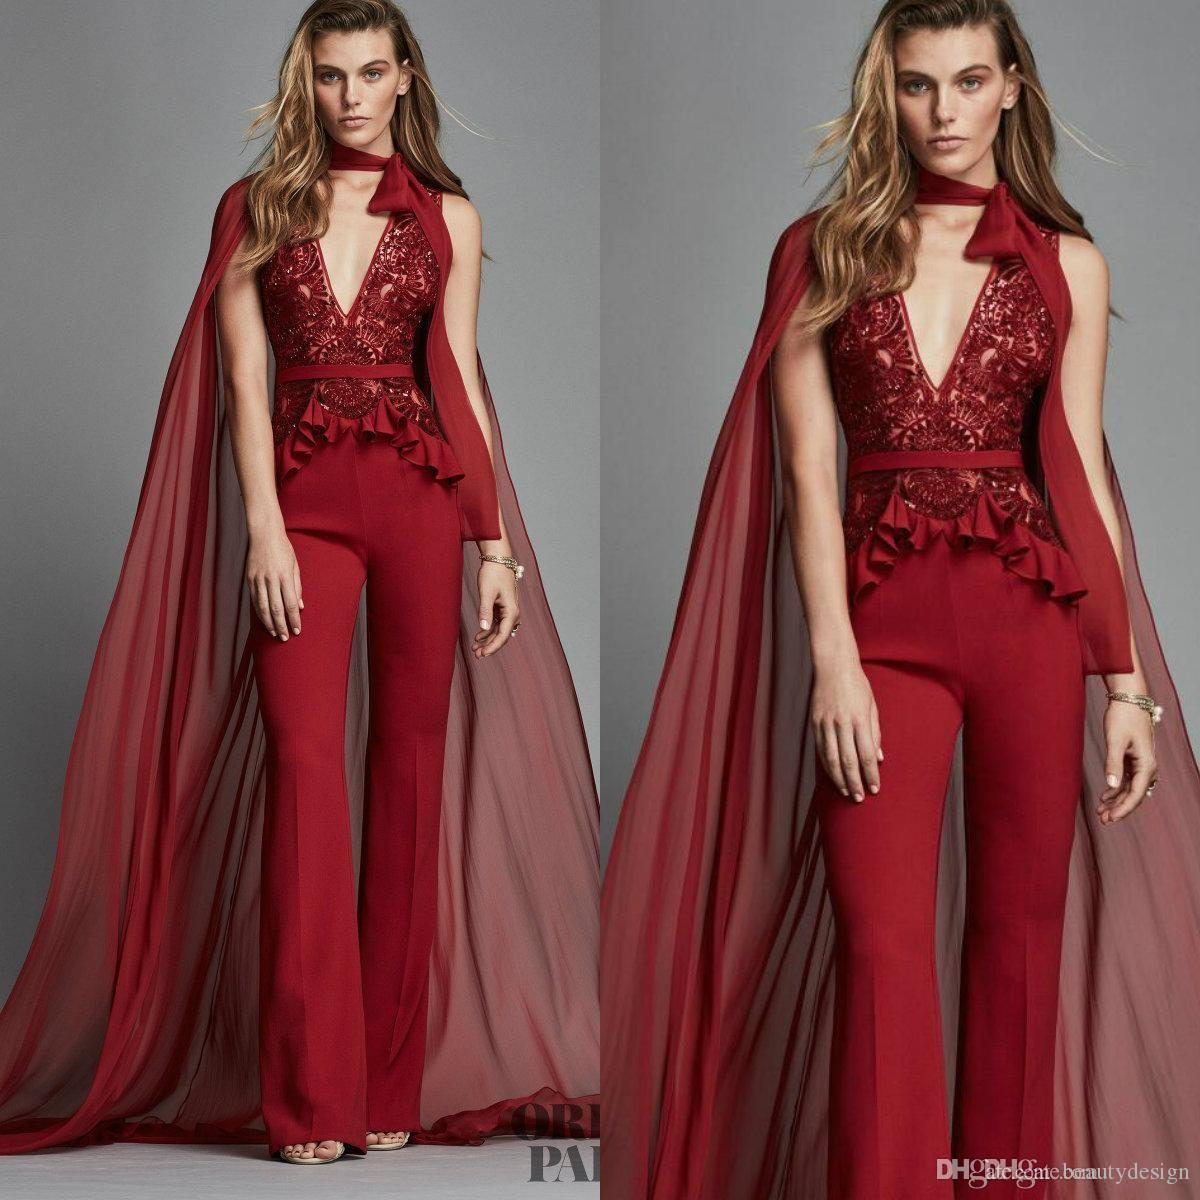 6b248b895bc Zuhair Murad Red Evening Dresses With Warp Deep V Neck Lace Appliques  Fashion Women Jumpsuits Custom Made Prom Dress Chiffon Party Gowns Ladies  Occasion ...